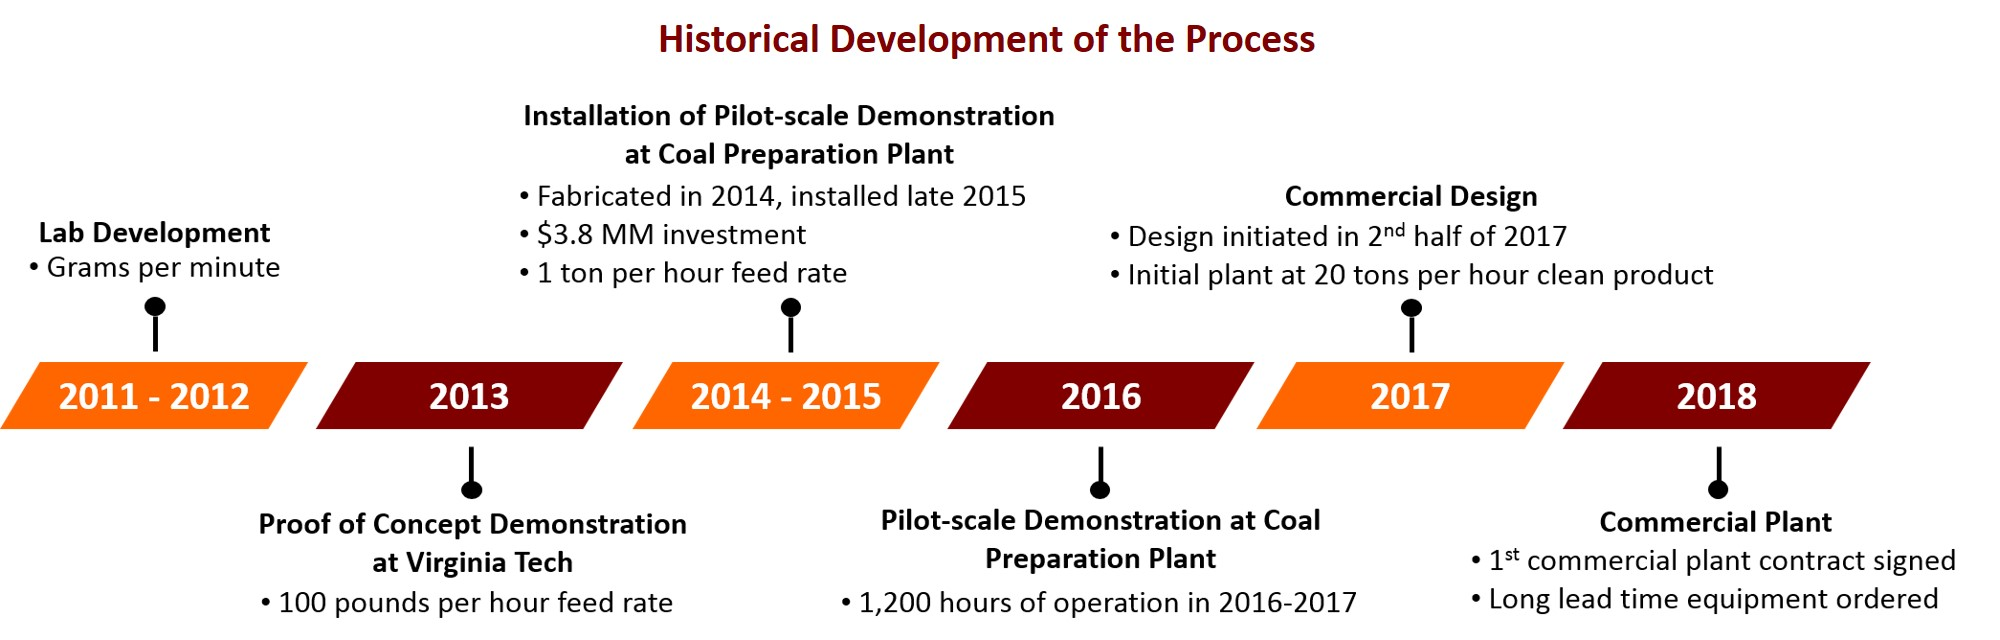 Historical Development of the Process